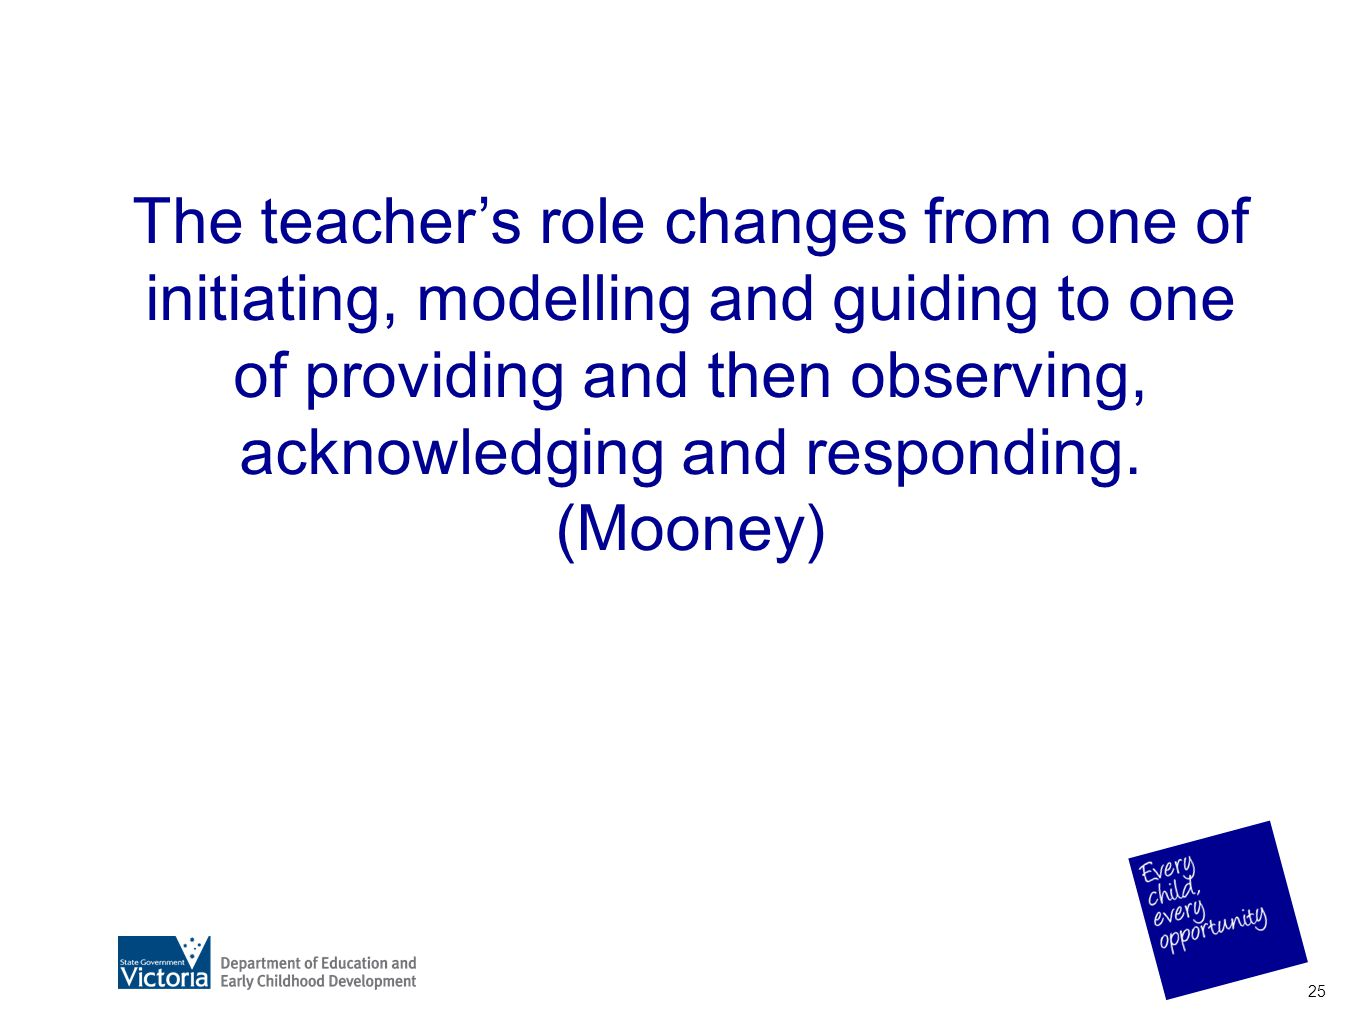 The teacher's role changes from one of initiating, modelling and guiding to one of providing and then observing, acknowledging and responding. (Mooney)